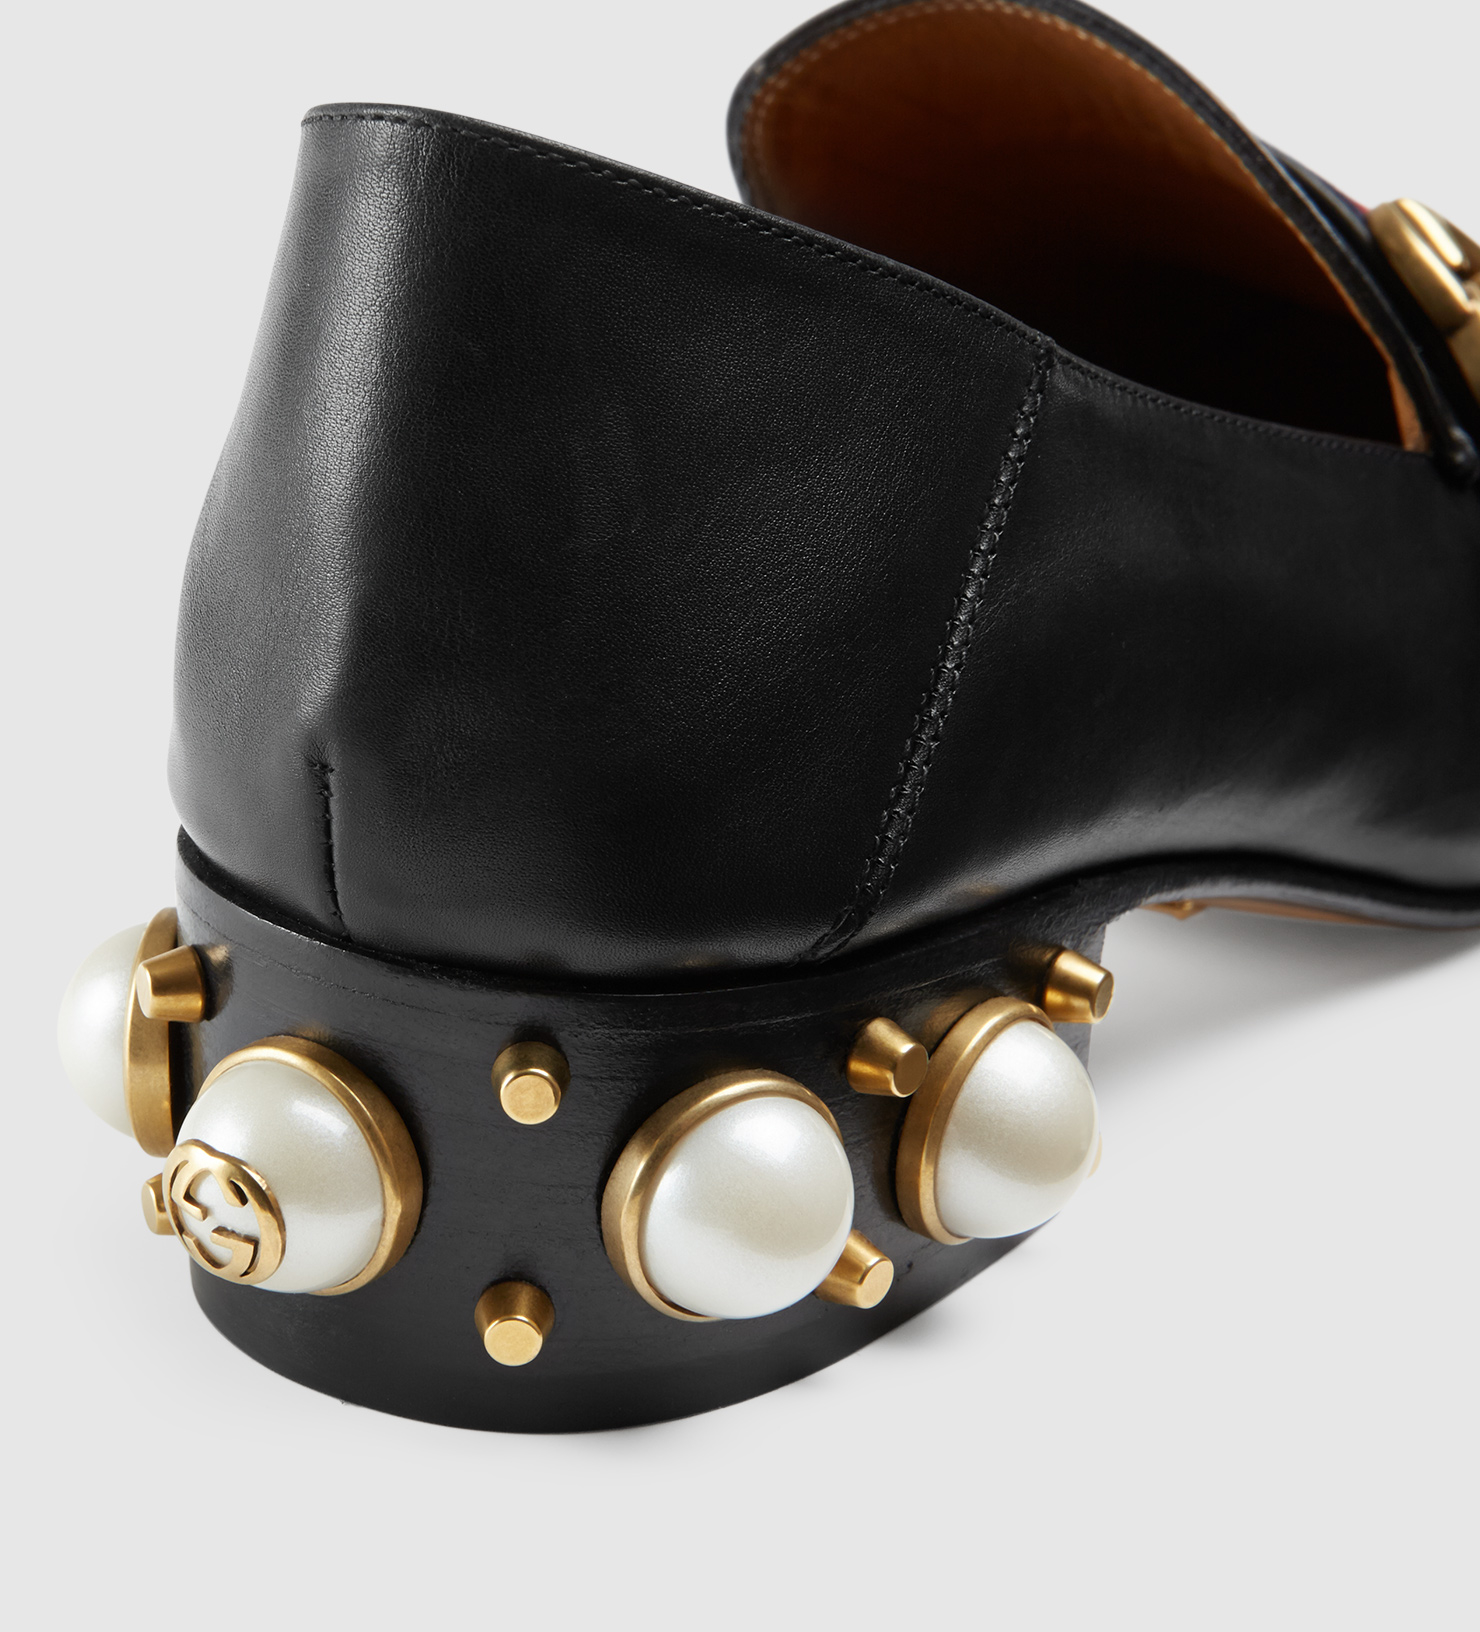 8b440baea79 Gucci Leather Mid-heel Loafer in Black - Lyst